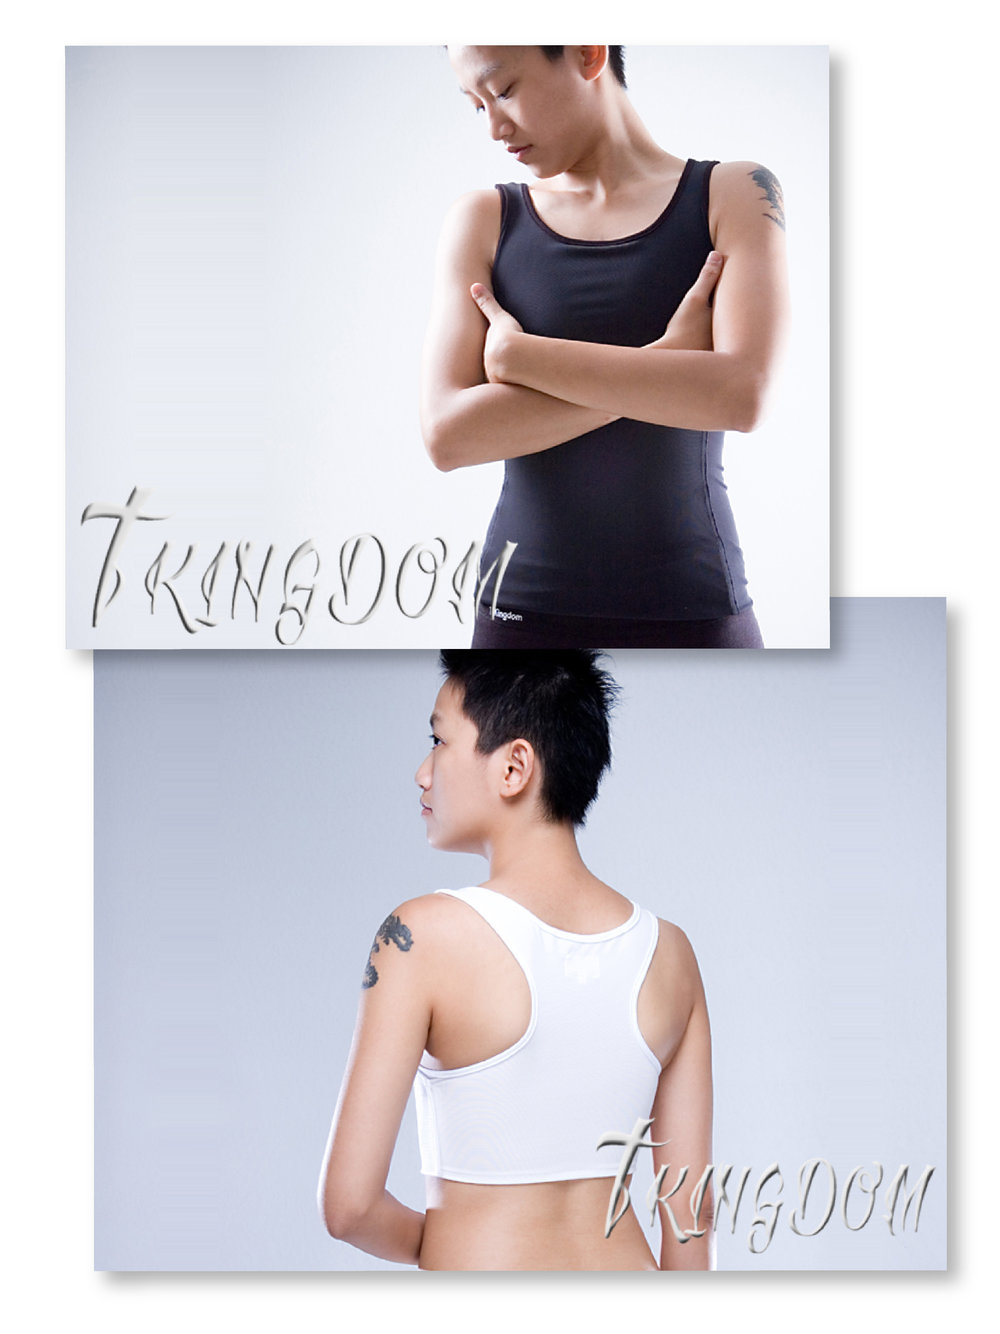 T-Kingdom - T-Kingdom is another brand carried on LOVE BOAT, based in Taiwan. Styles range from $45-80 and are comfortable and tight.That being said we recommend these for smaller to medium bodies and chests, but don't recommend these for much larger (again, Asian sizing conventions here).These are often called